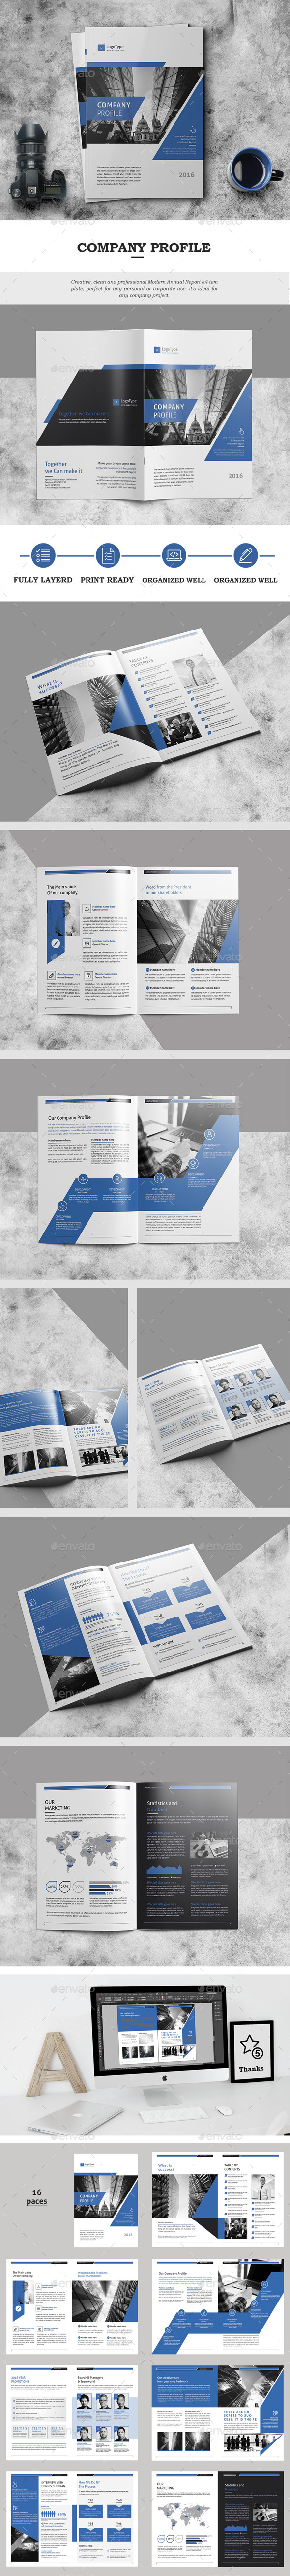 Company Profile 16 Pages - Catalogs Brochures